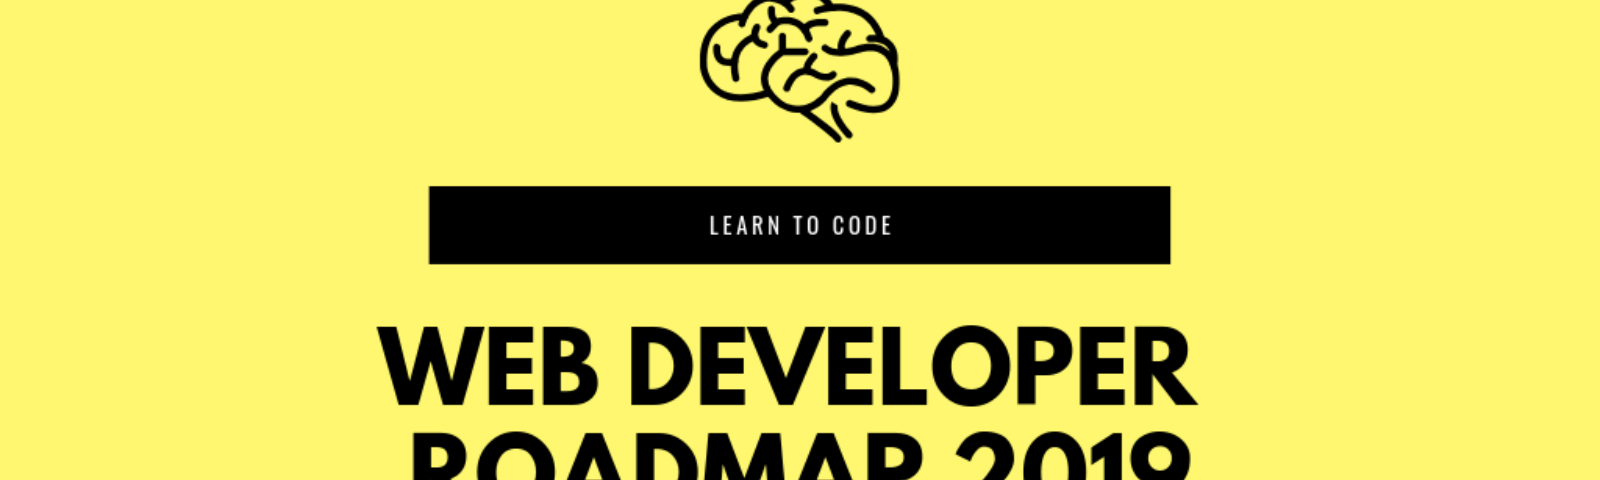 Learn Php In 1 Day Definitive Guide To Learn Master Php Programming English Edition Epub Best C Programming Book Pdf Free Download